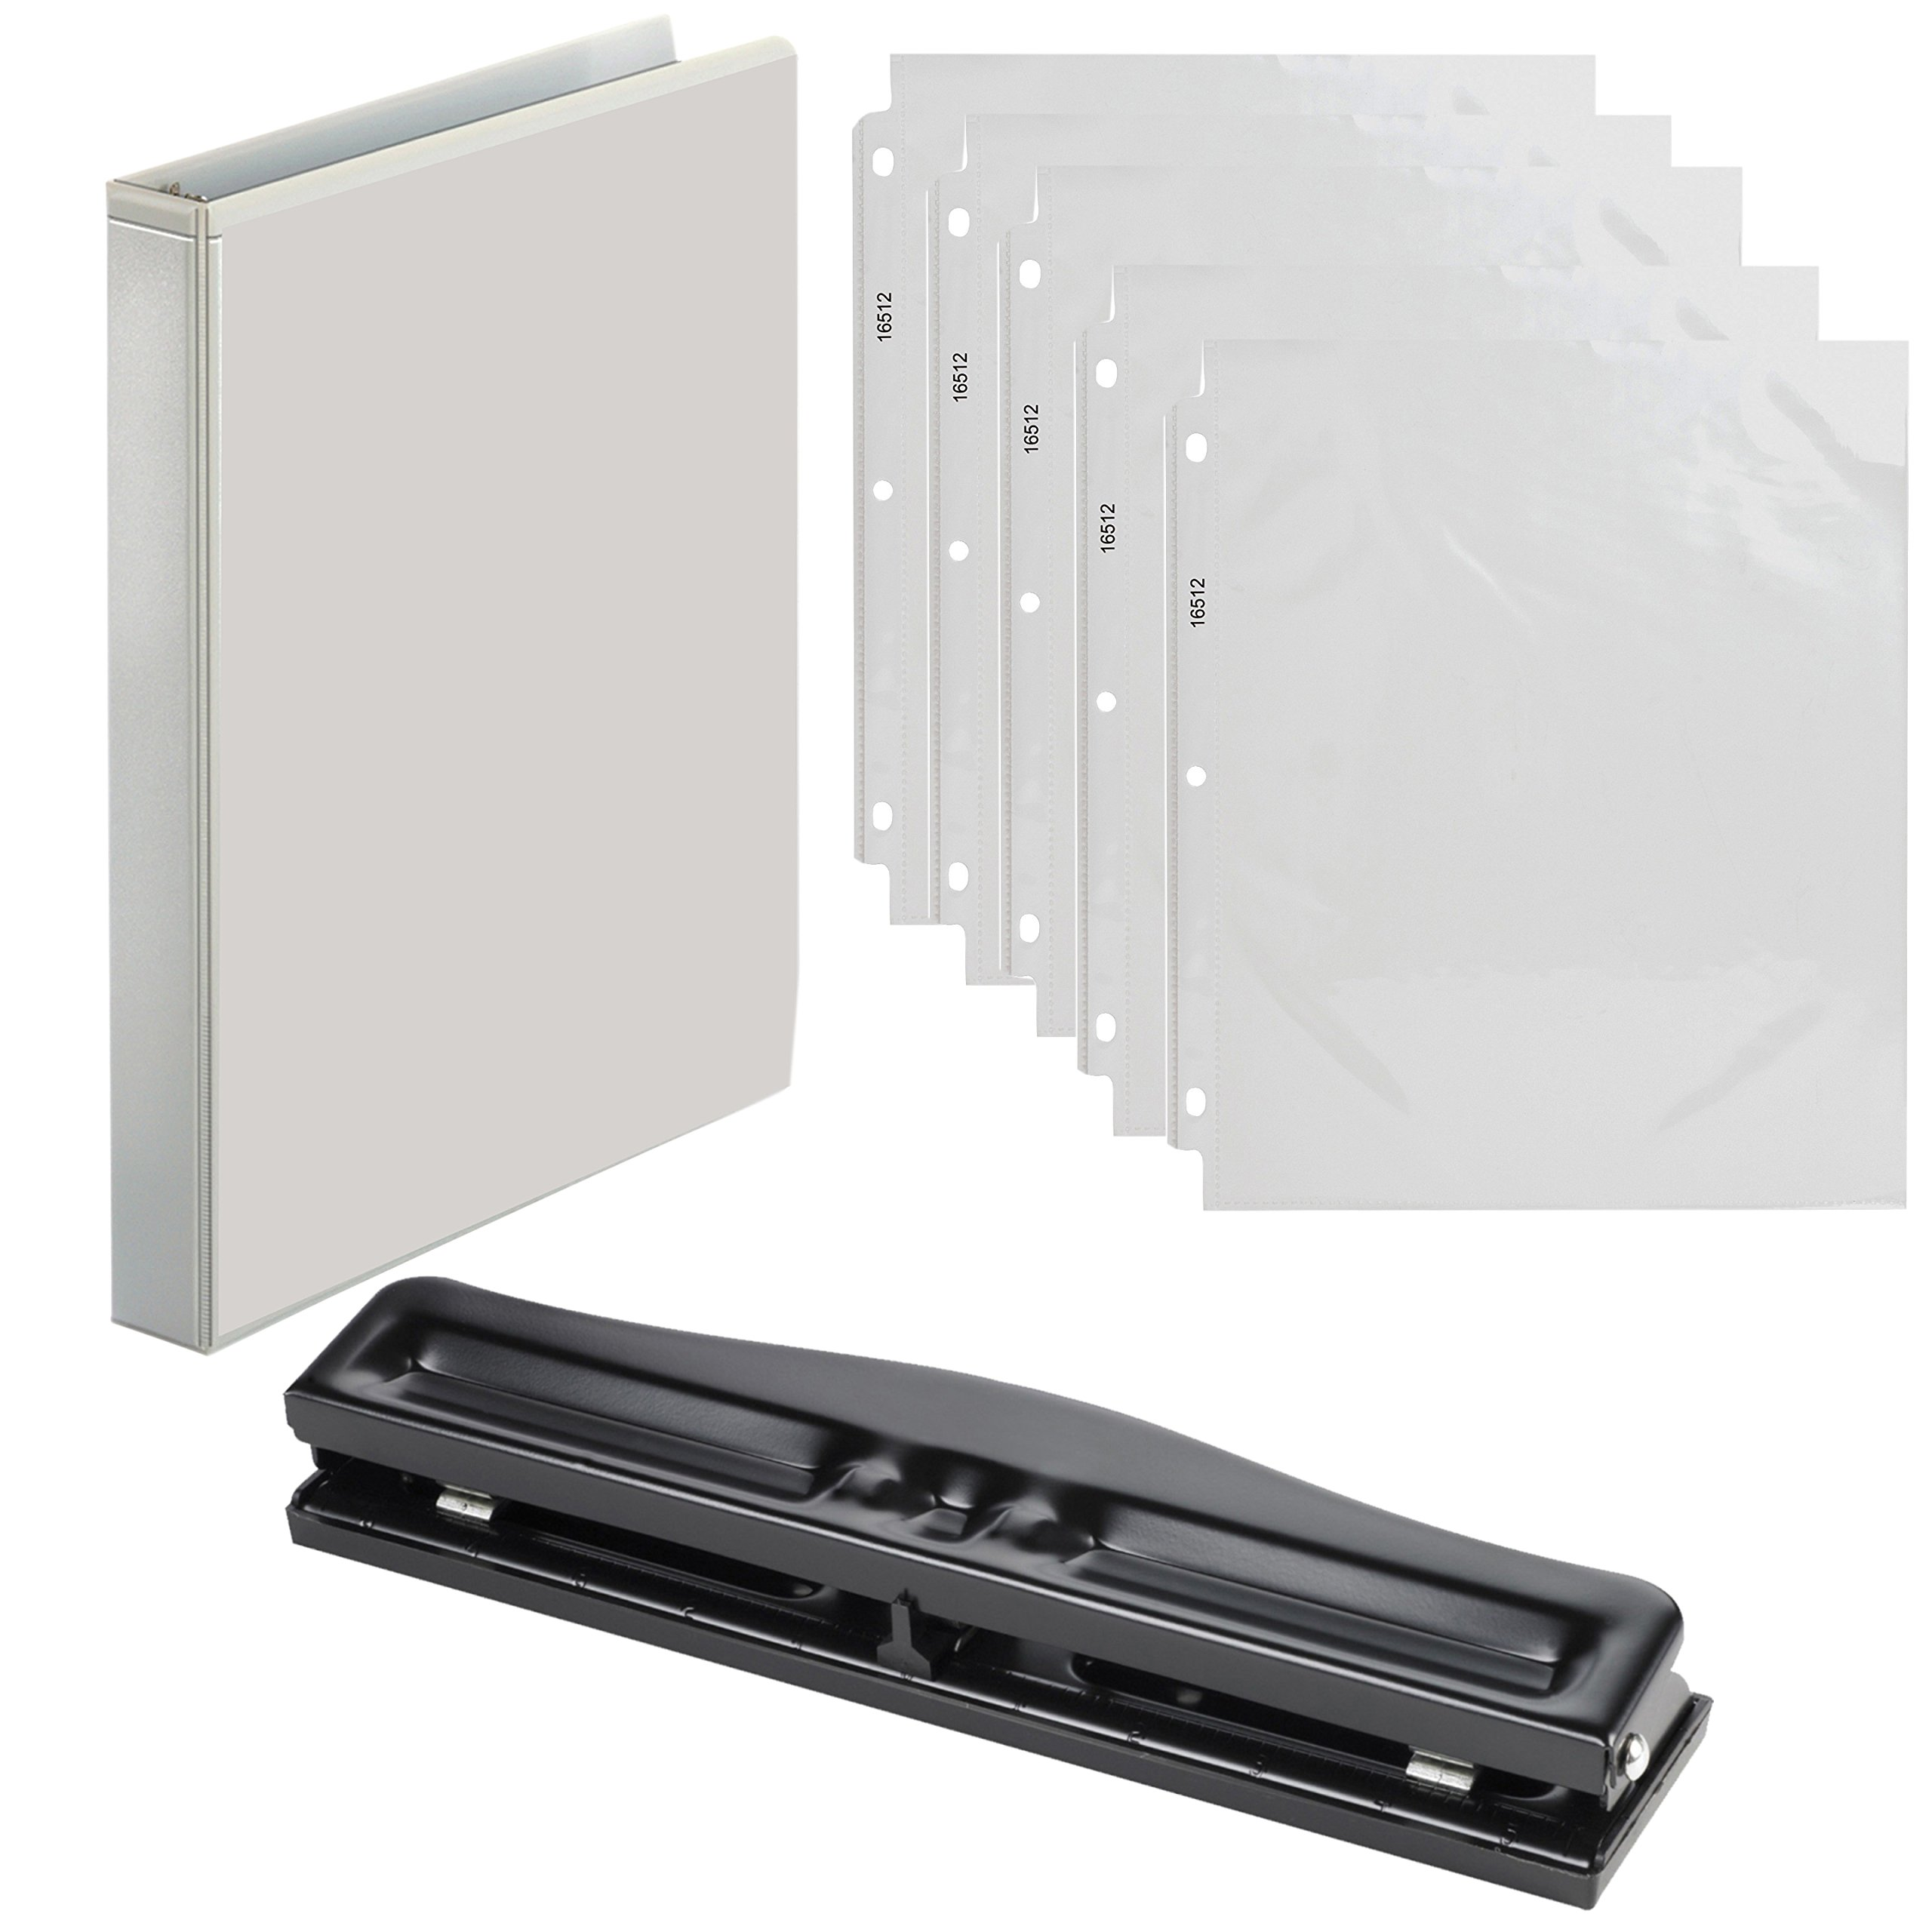 3 Ring Binder 1 inch, with 50 Plastic Sheet Protectors, with Adjustable Hole Puncher for Binders - Value Set (White Ring Binder)